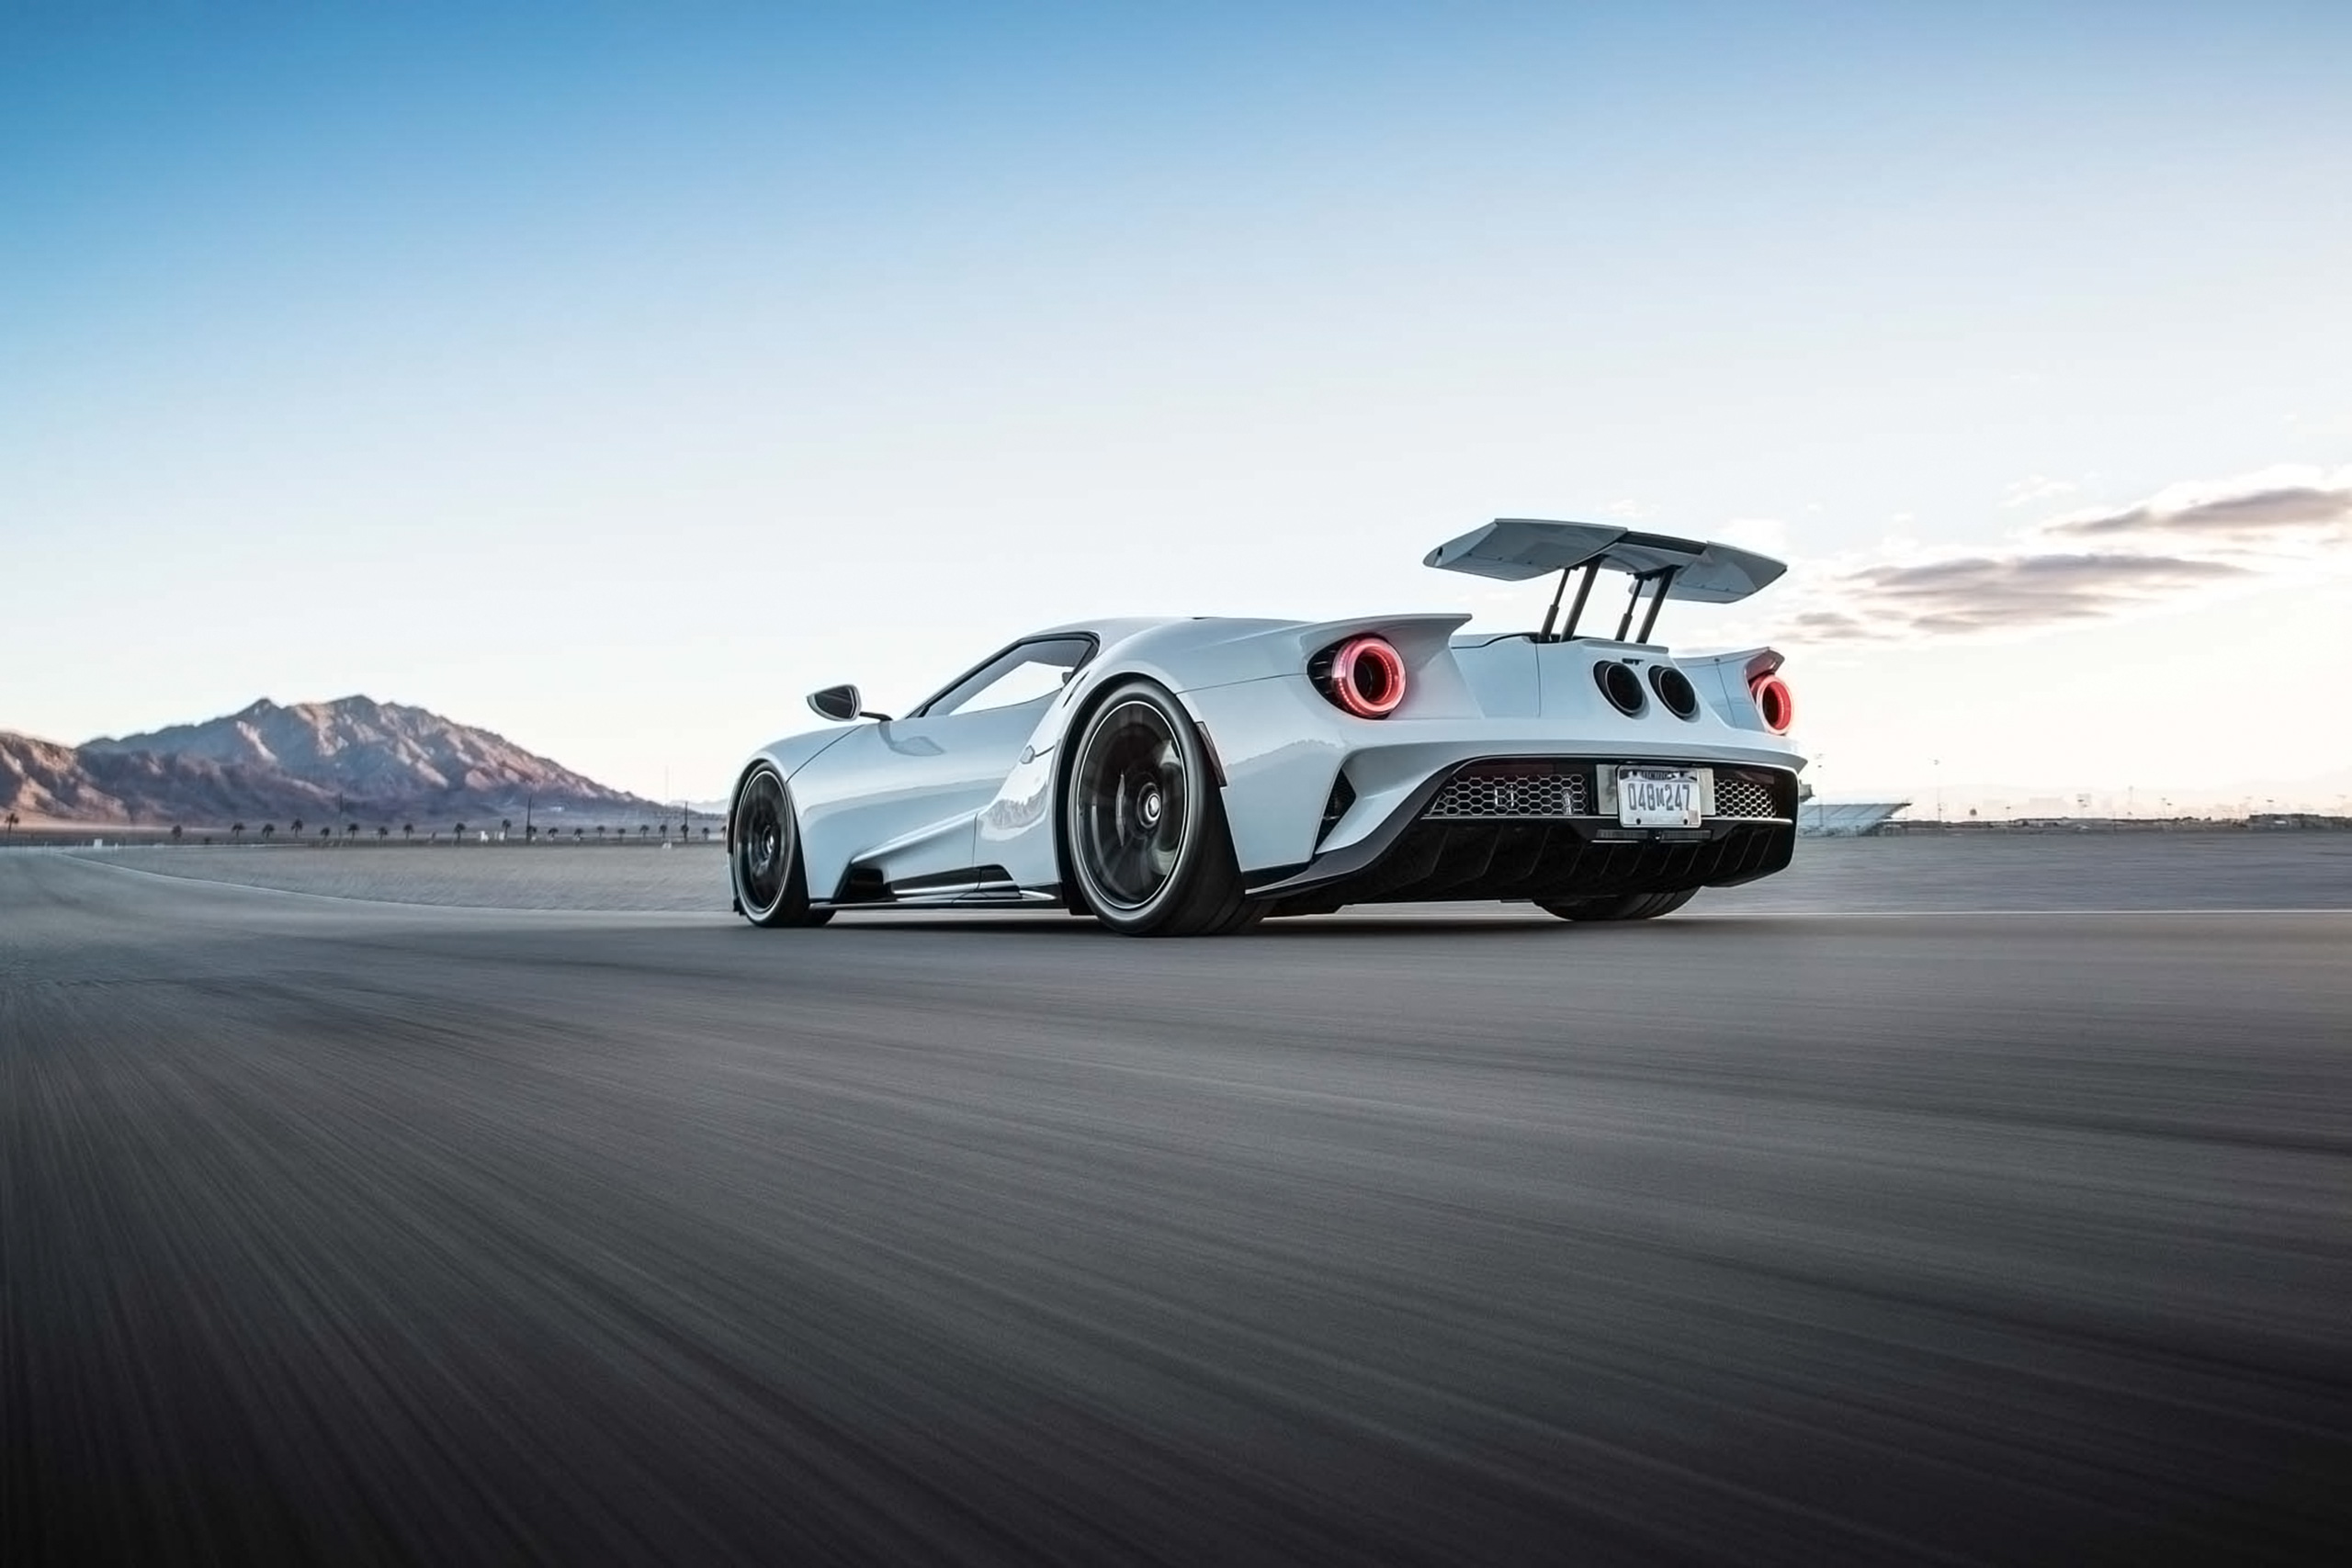 2017 Ford GT 2 HD Cars 4k Wallpapers Images